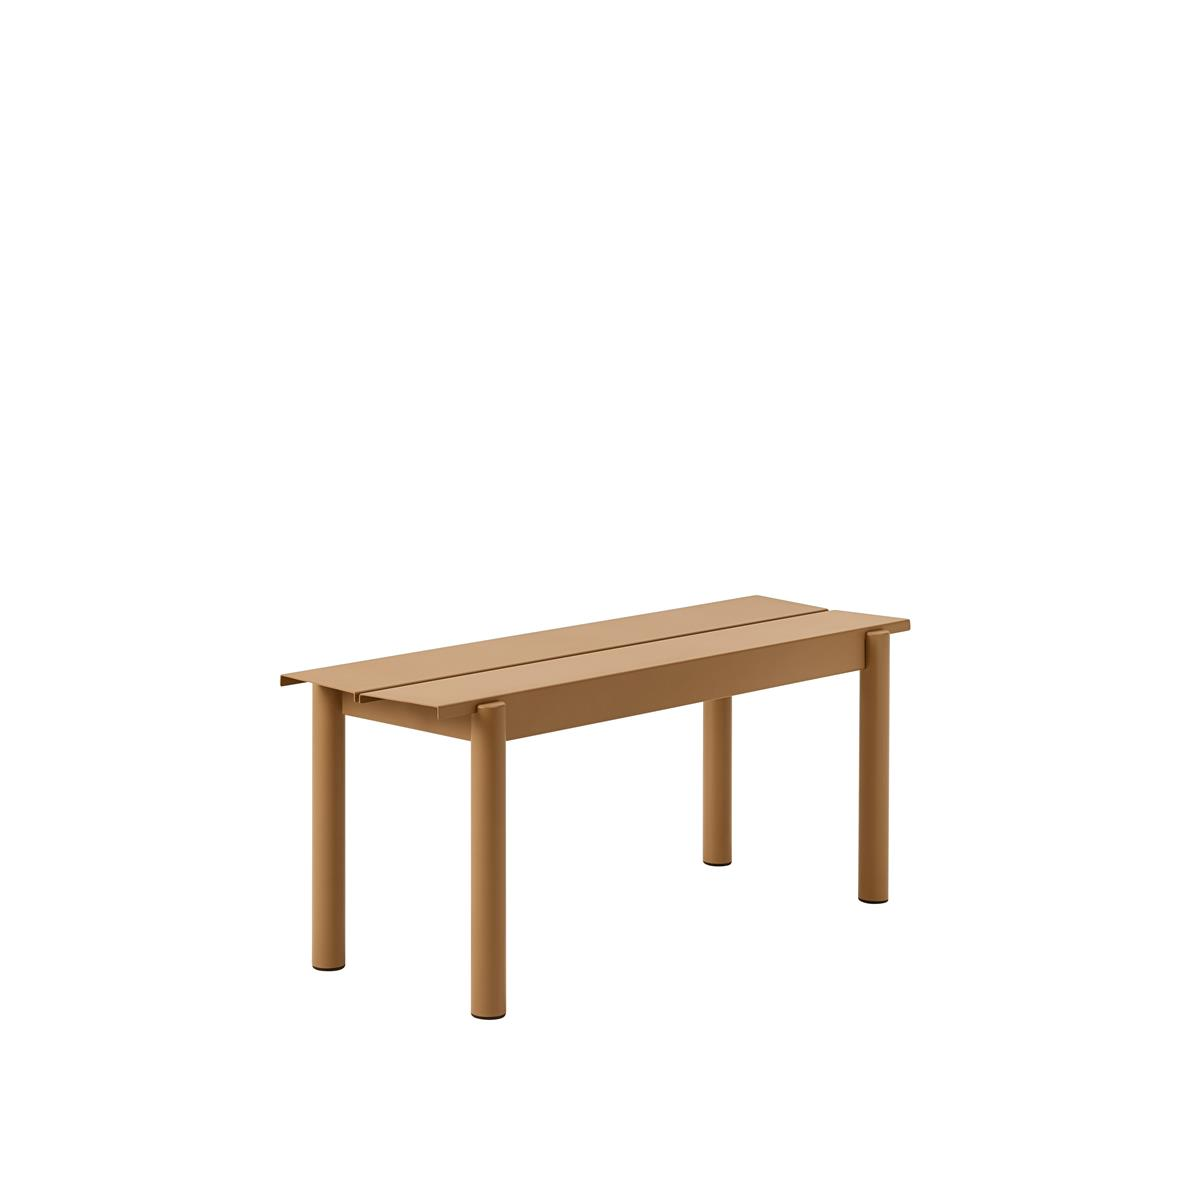 Linear Steel Bench 110 x H45,5 - Burnt Orange